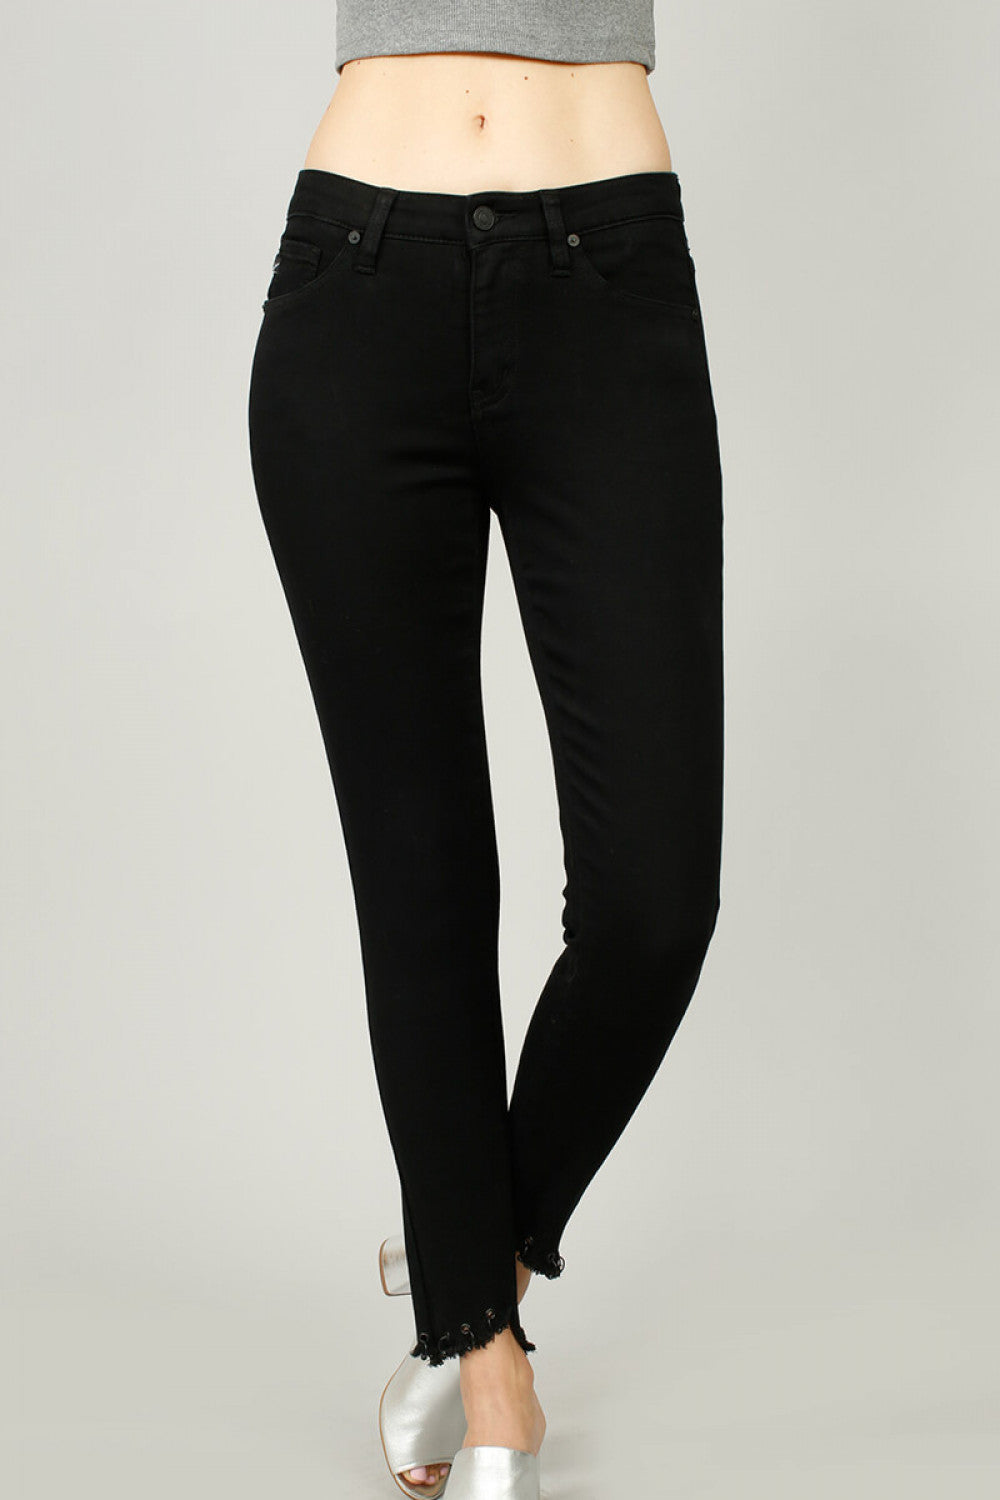 Kancan Denim (Black)